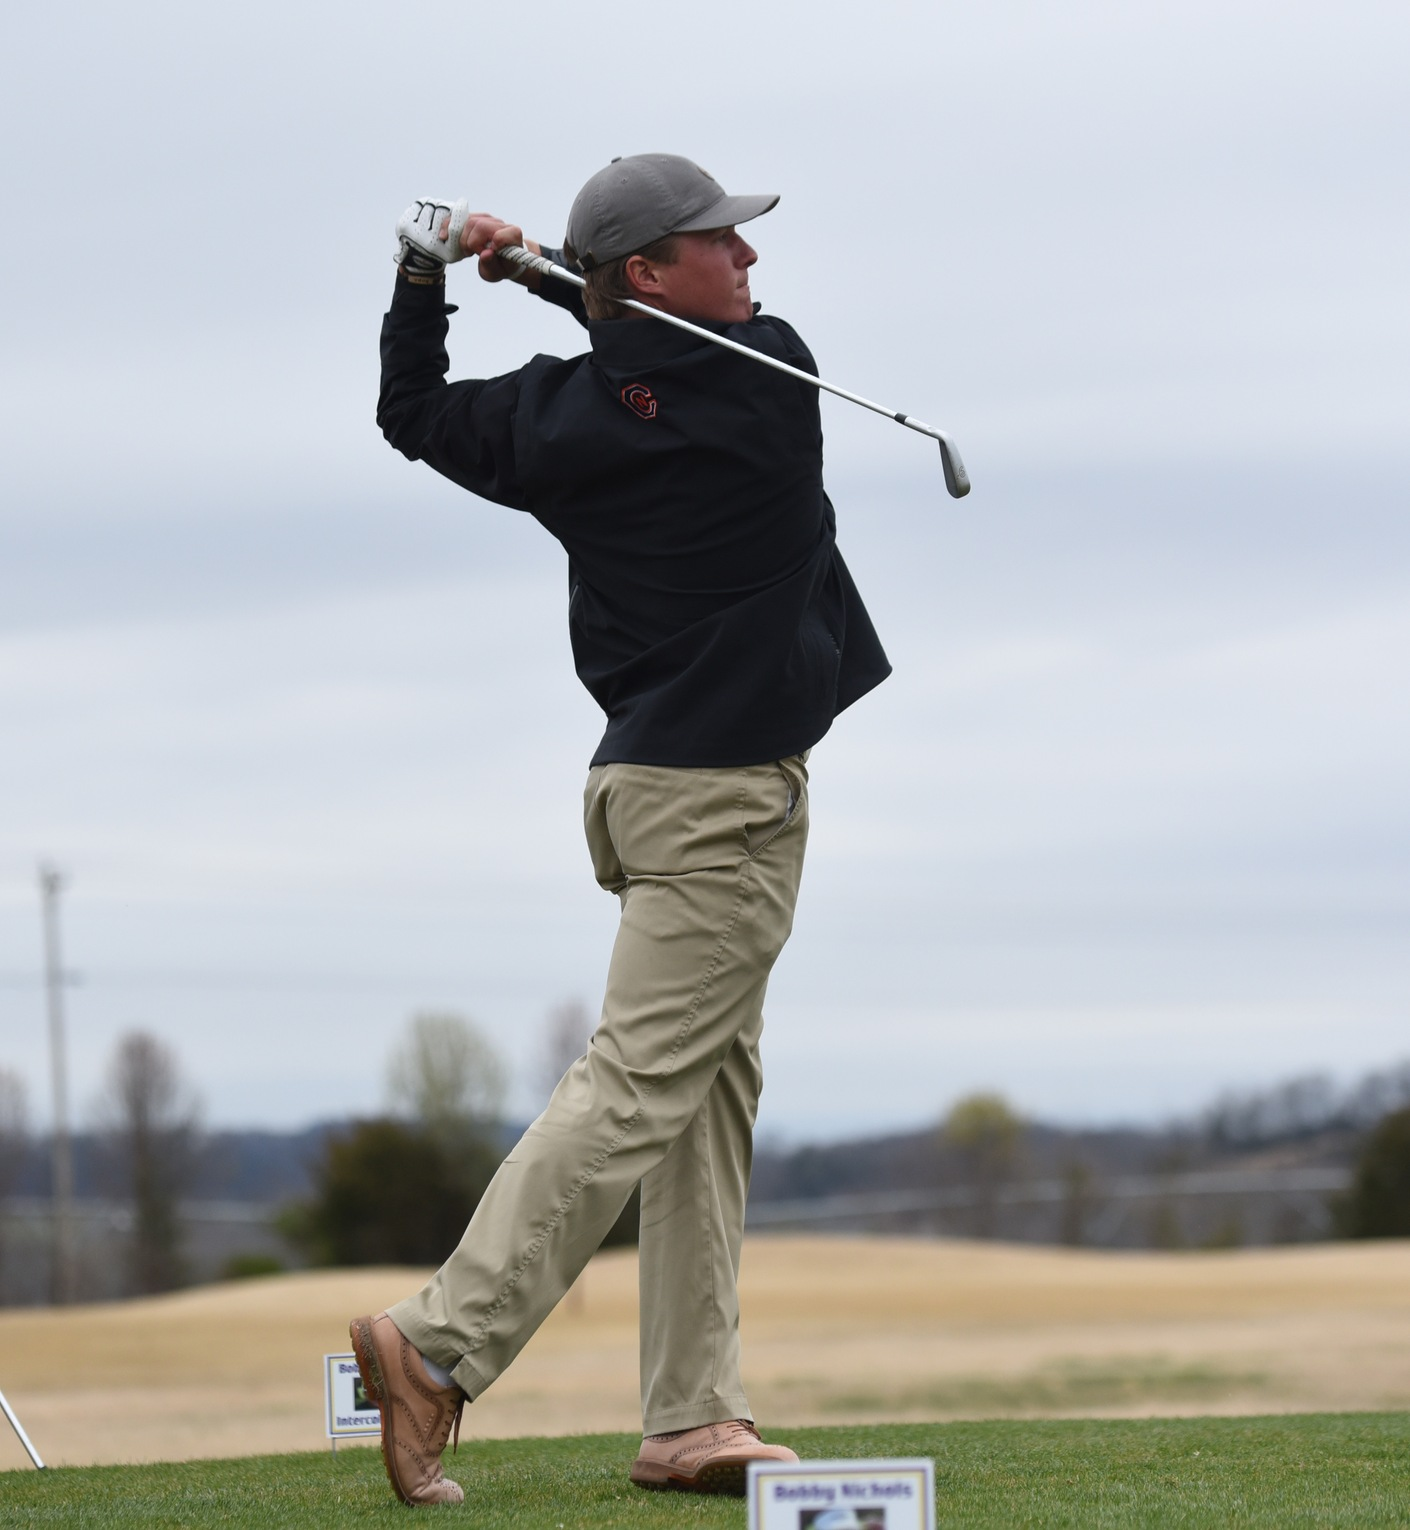 Eagles shoot 14-under in second round in Sevierville to match program best